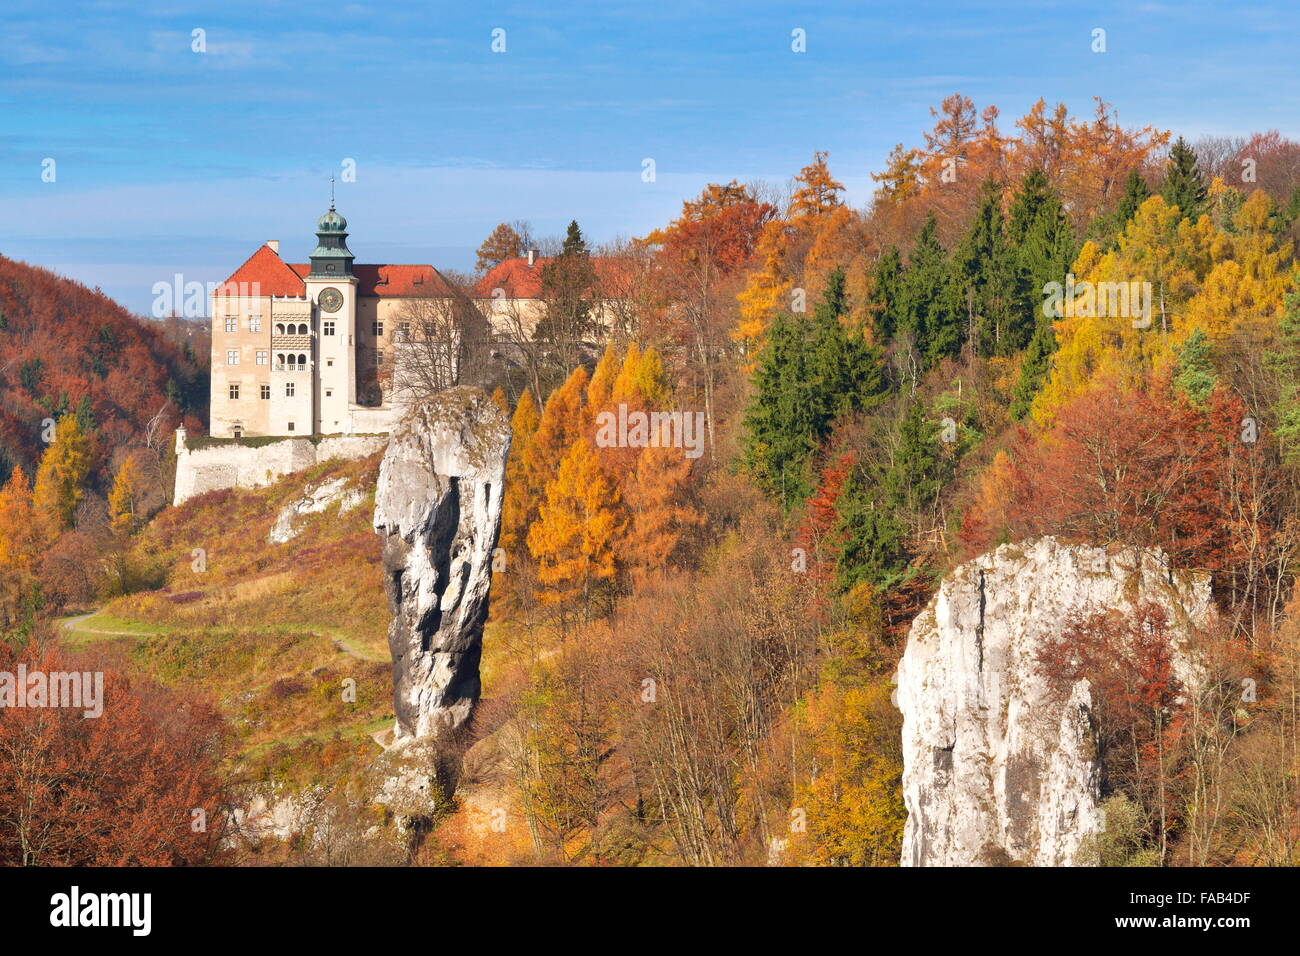 Pieskowa Skala - castle and Hercules Club Rock, National Park near Cracow, Poland - Stock Image